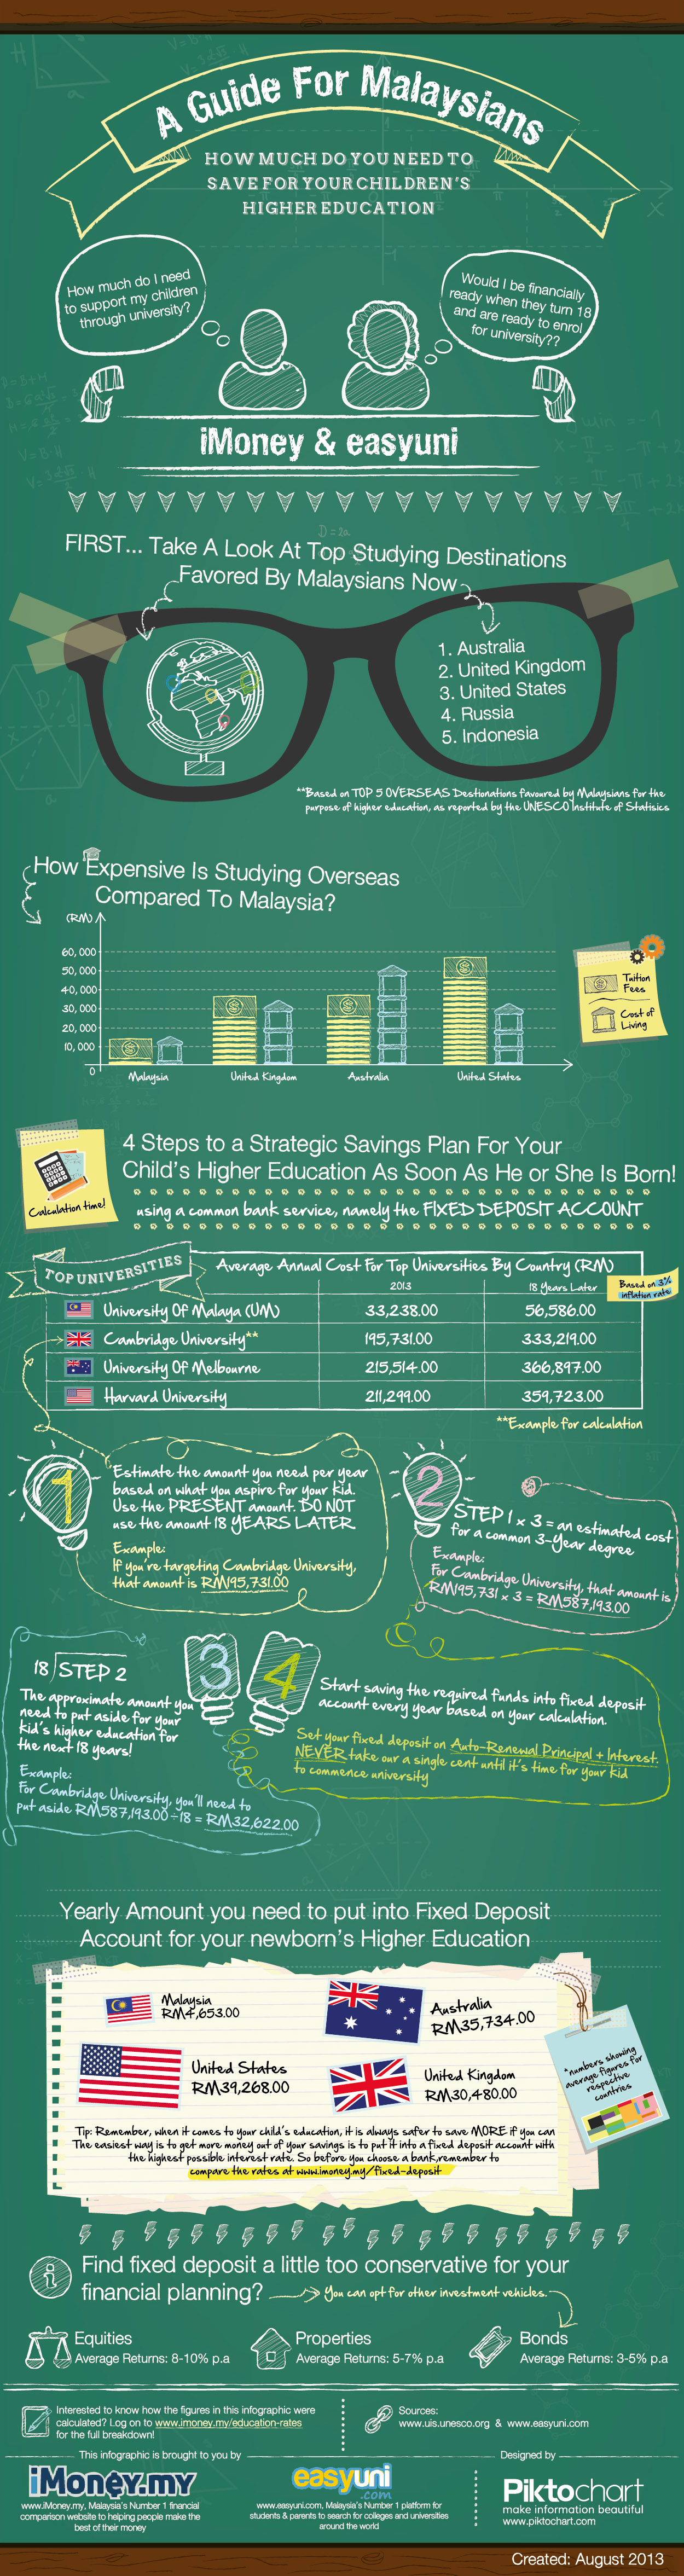 info-graphic about study abroad